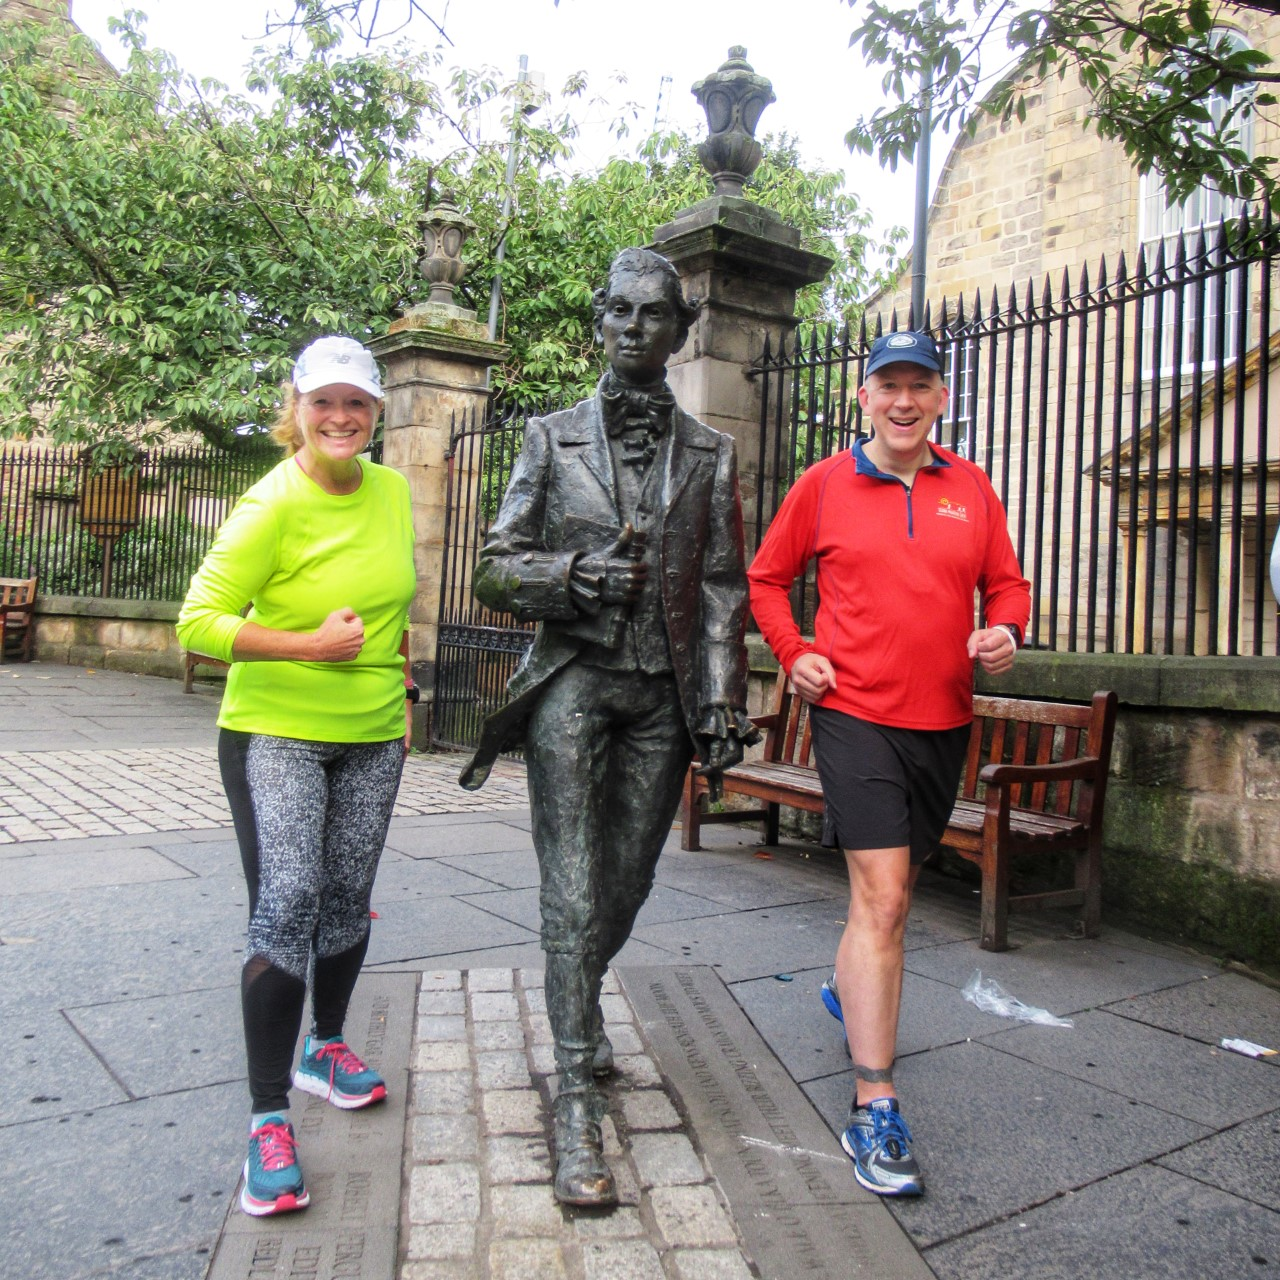 Meeting the locals on a Run the Sights running tour